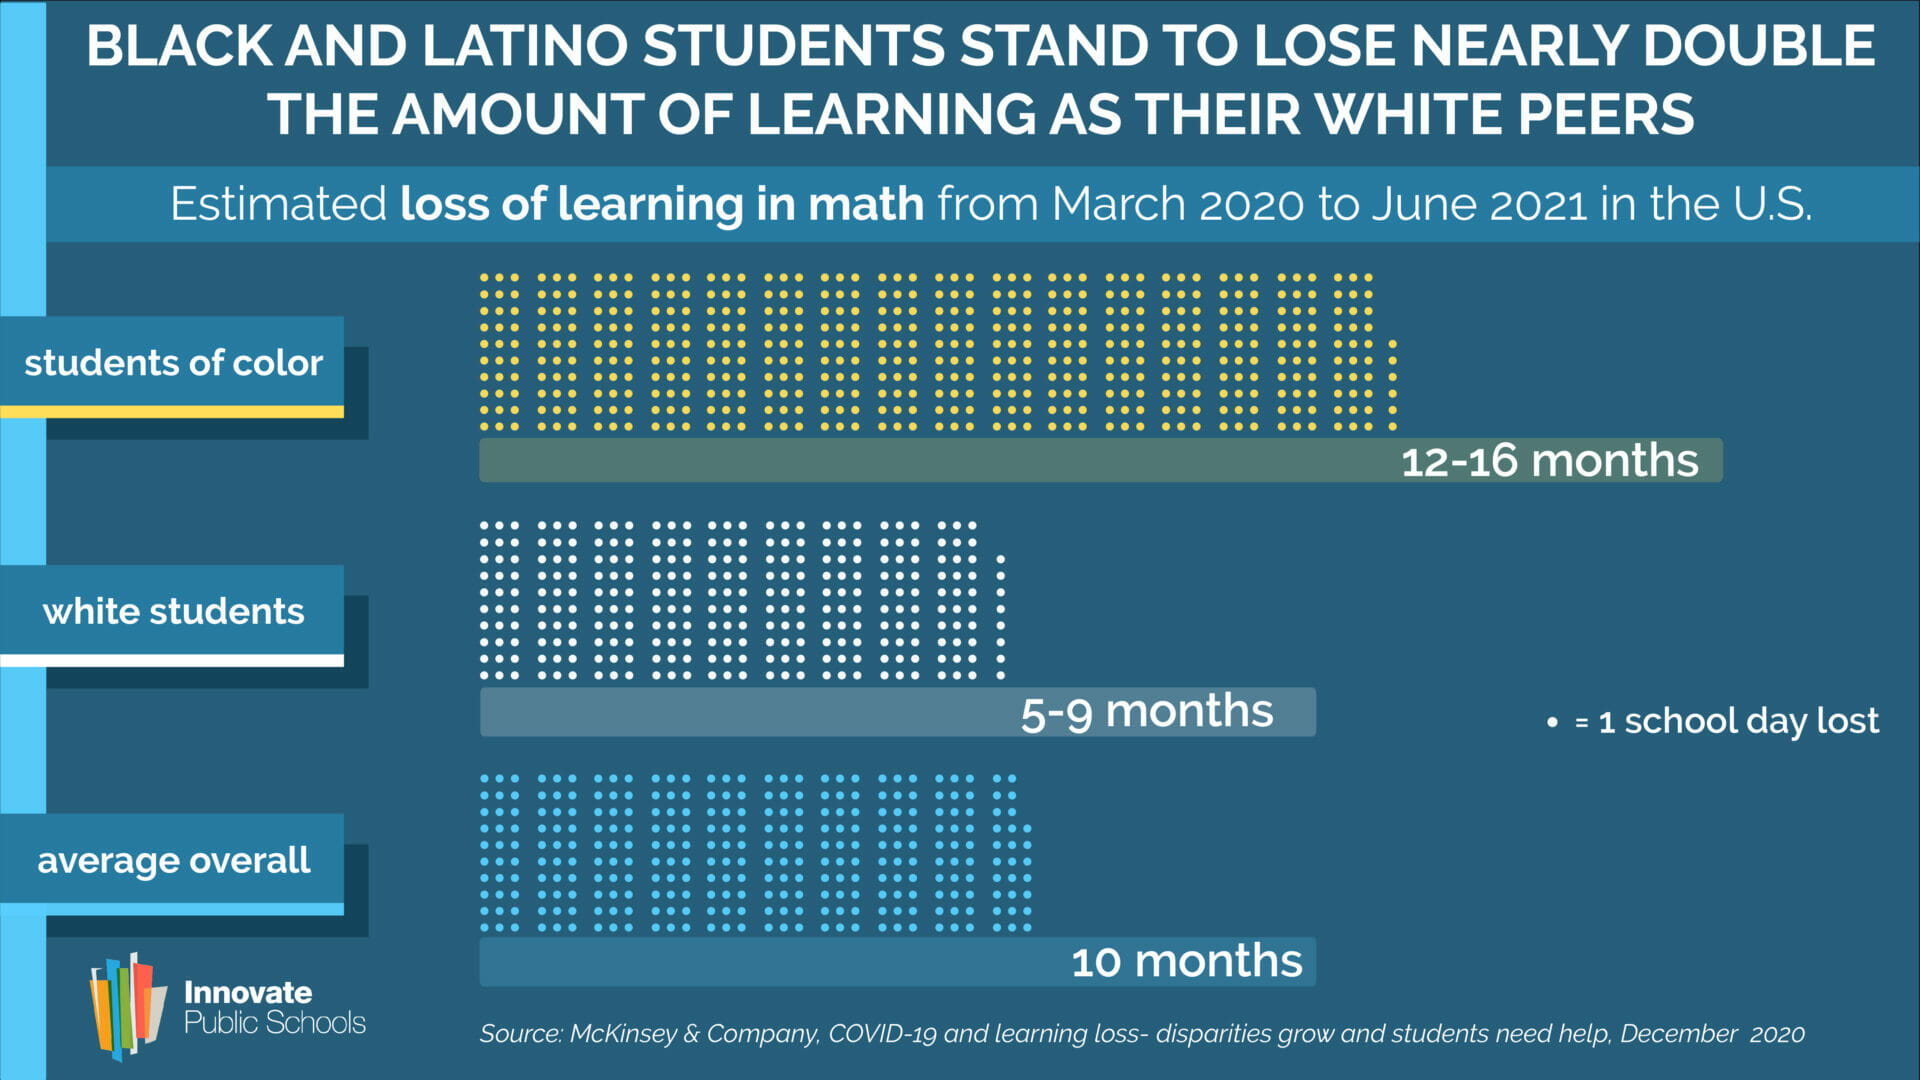 Black and Latino Students Stand to Lose Nearly Double the Learning